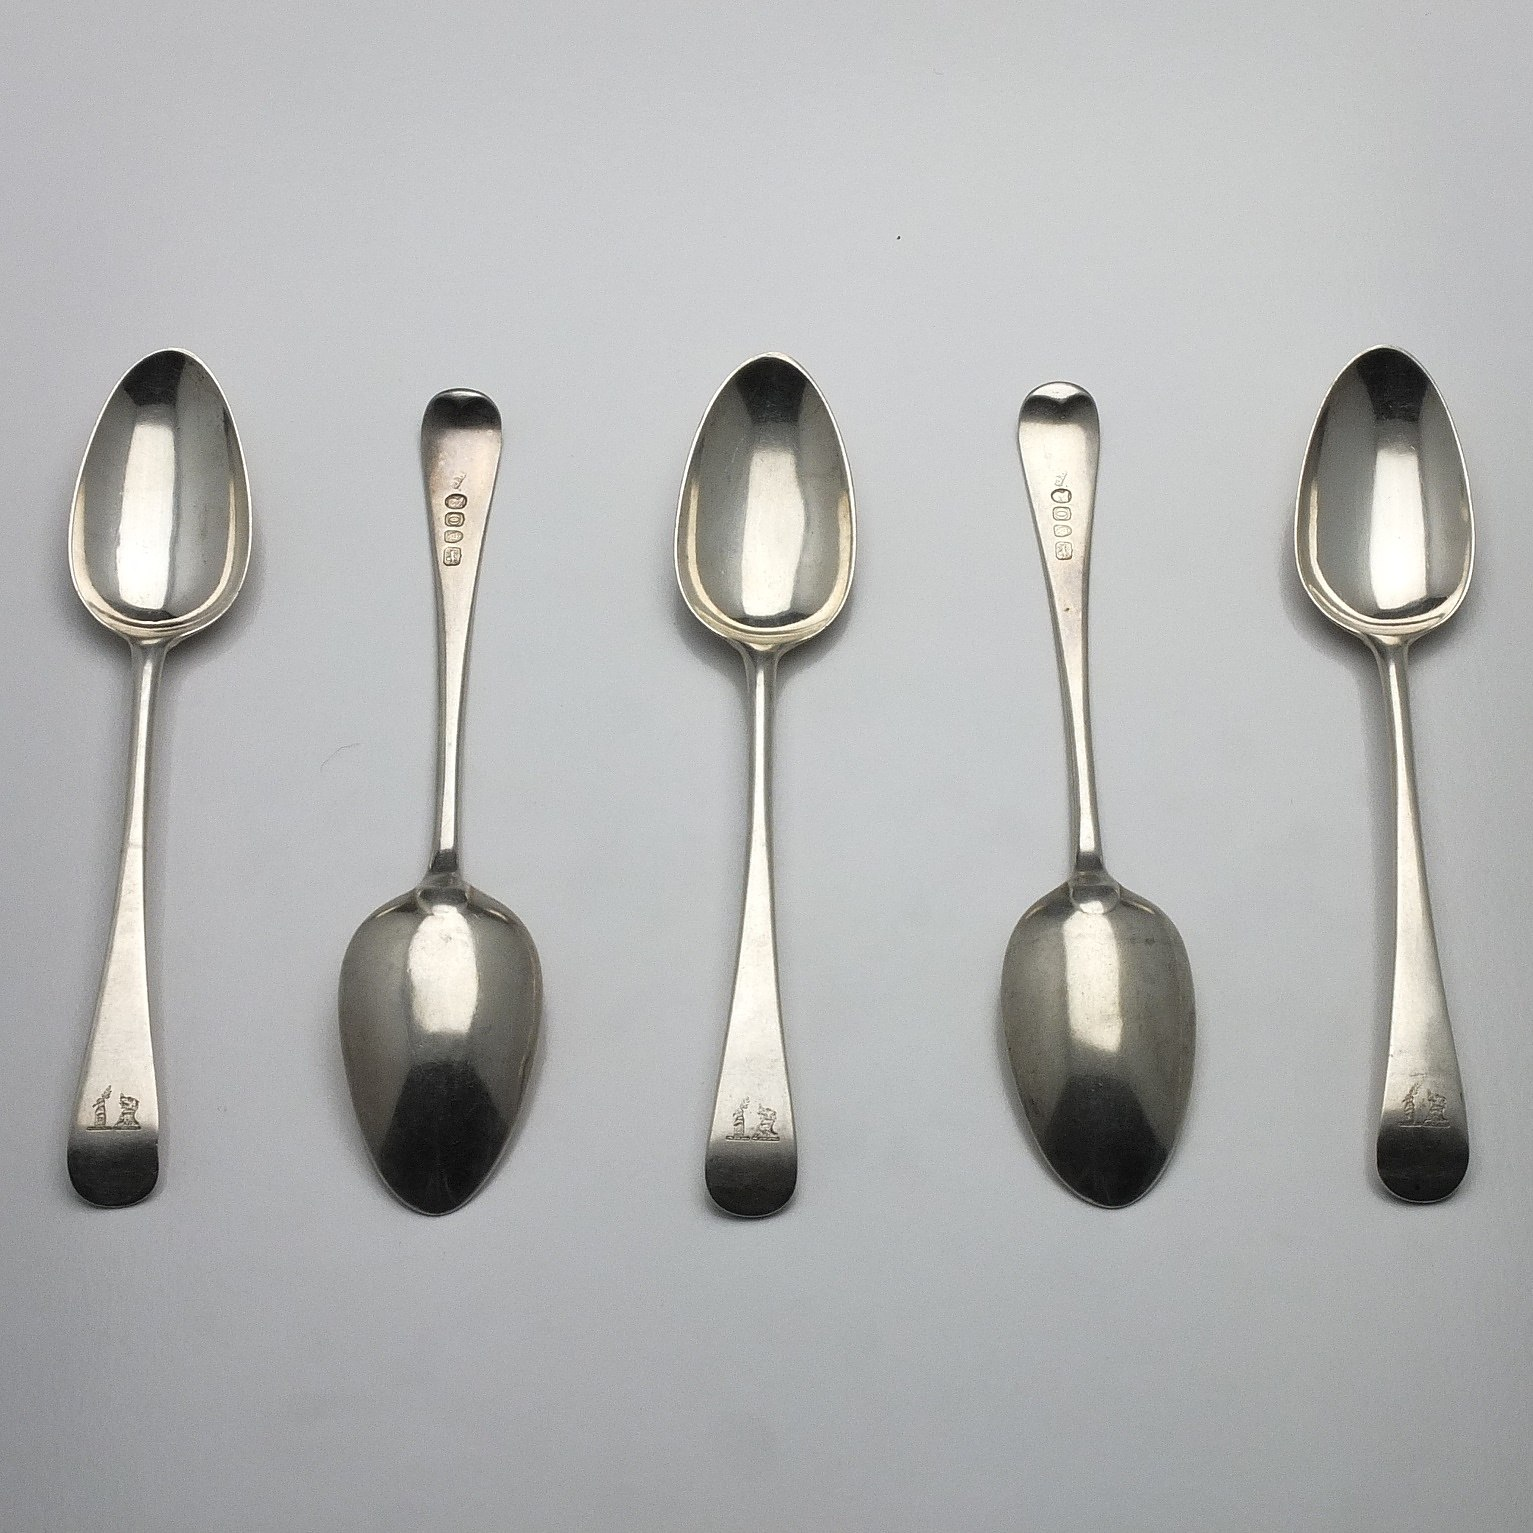 'Five George III Crested Sterling Silver Spoons Richard Crossley London 1809'